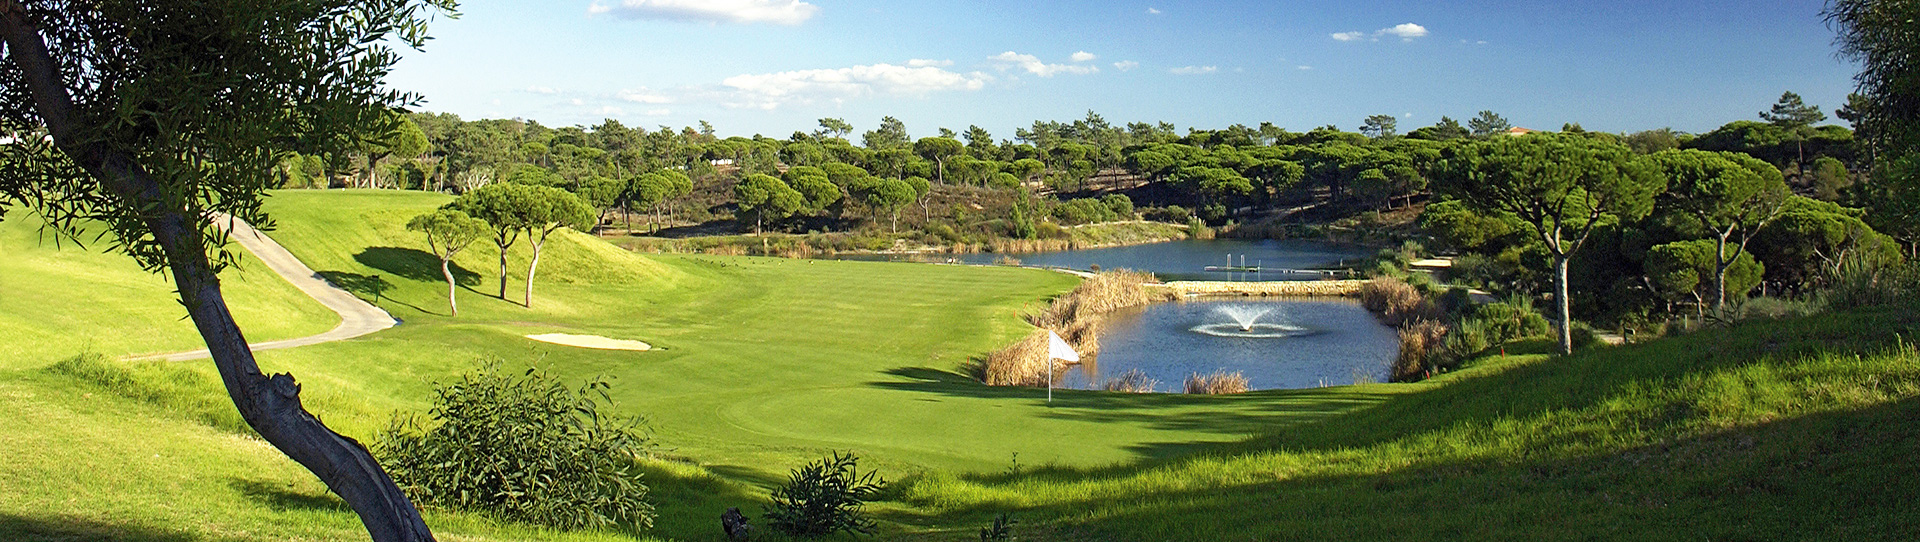 Vale do Lobo Royal - Photo 2